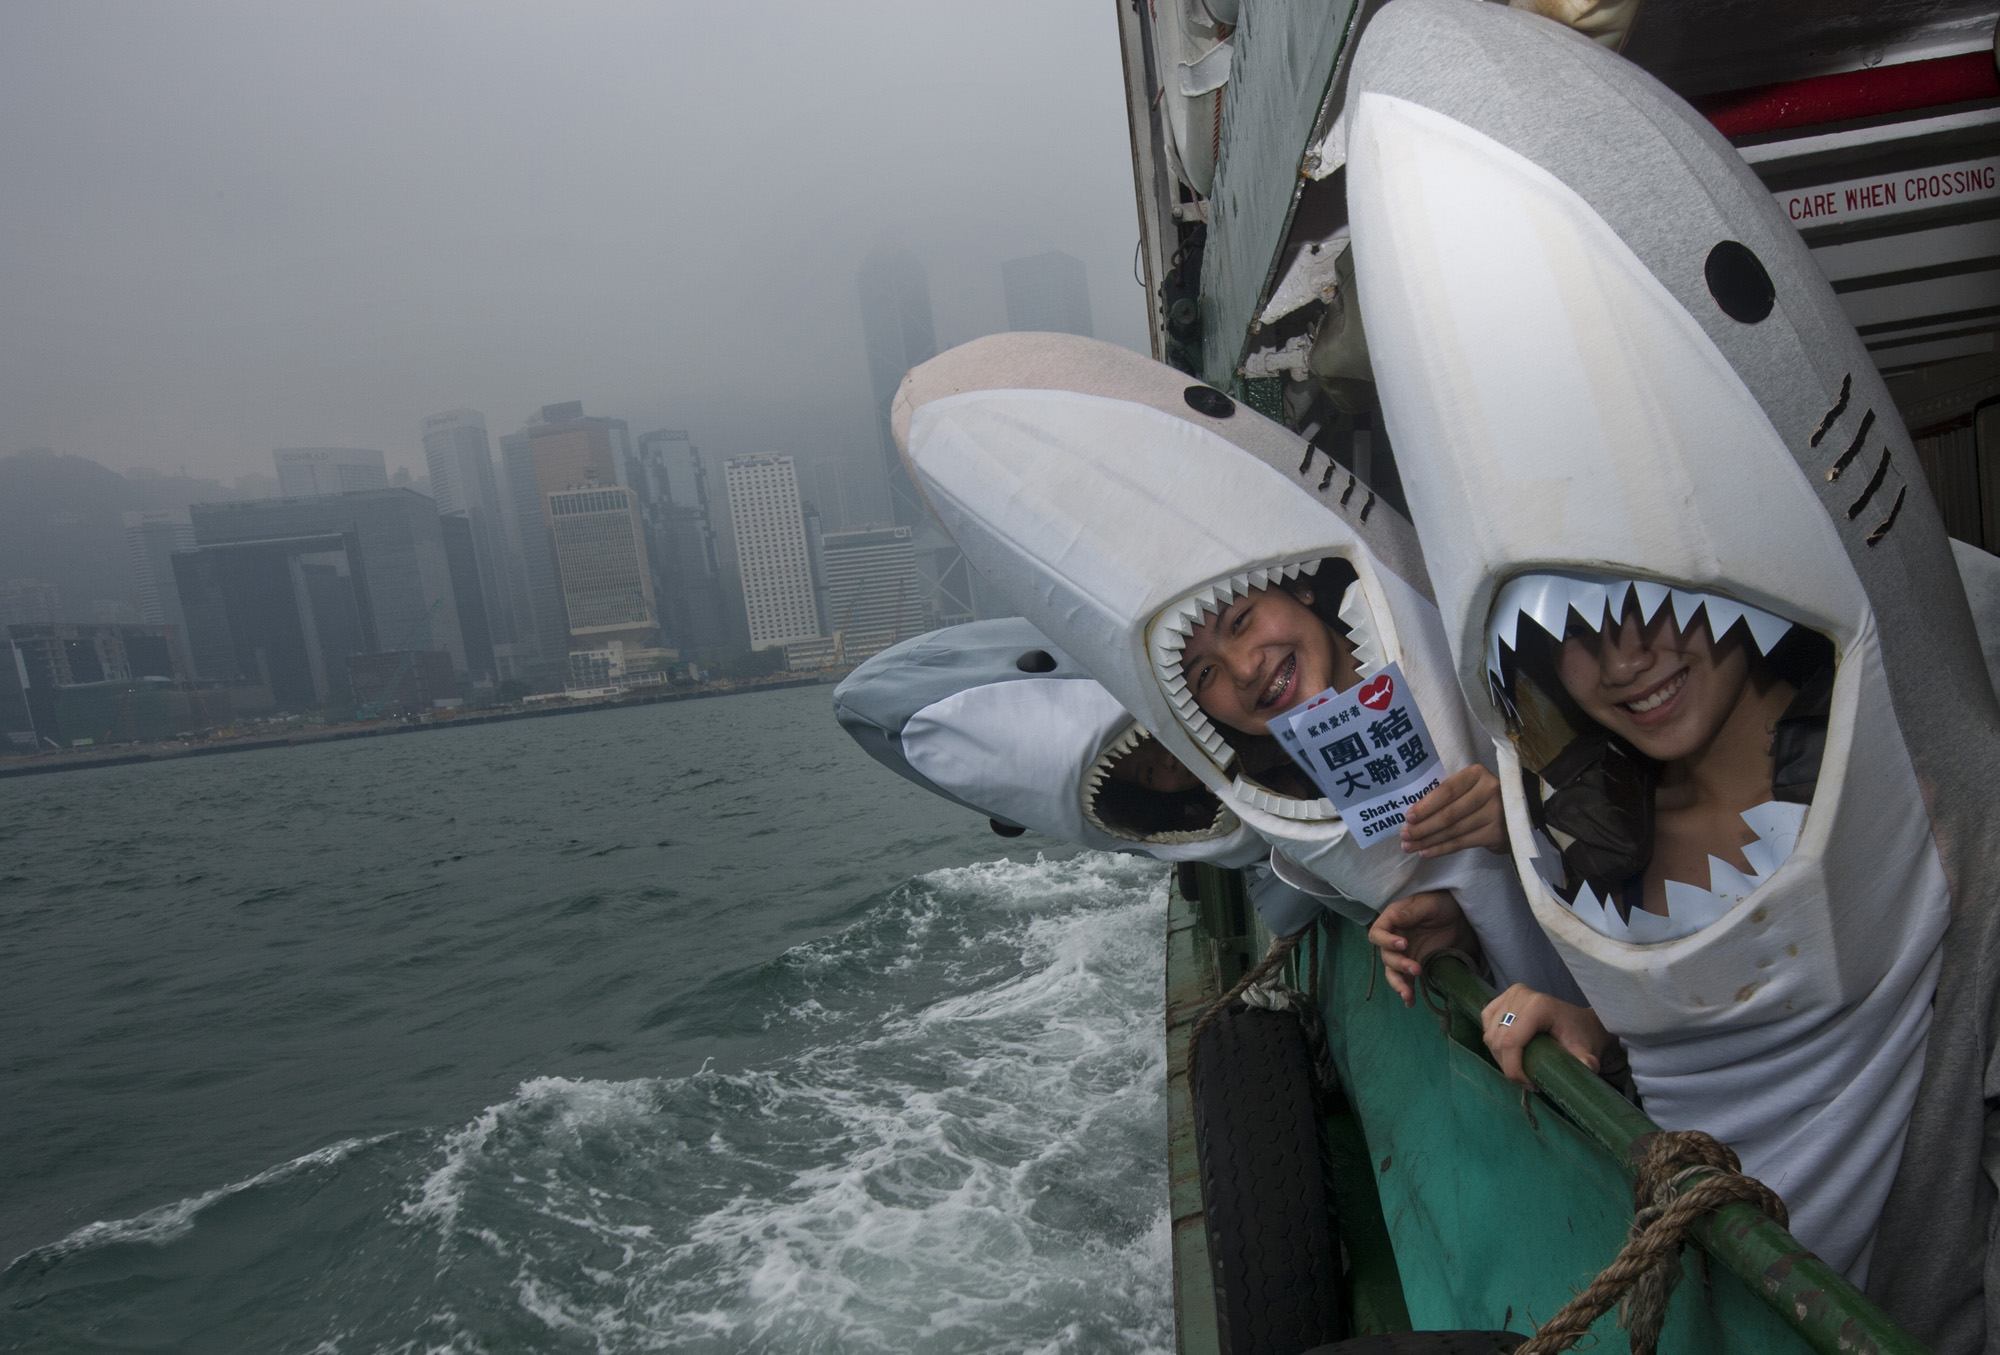 The Hong Kong shark foundation sharkettes posed for a picture on the star ferry after a freezemob at Avenue of Stars in Hong Kong, 15 May 2011.The HKSF is calling for all Hong Kong's resident to say no to shark fin soup. Around 73 million sharks are being killed each year for their fins to satisfy Asian demand for the infamous luxury culinary dish. EPA/Paul Hilton